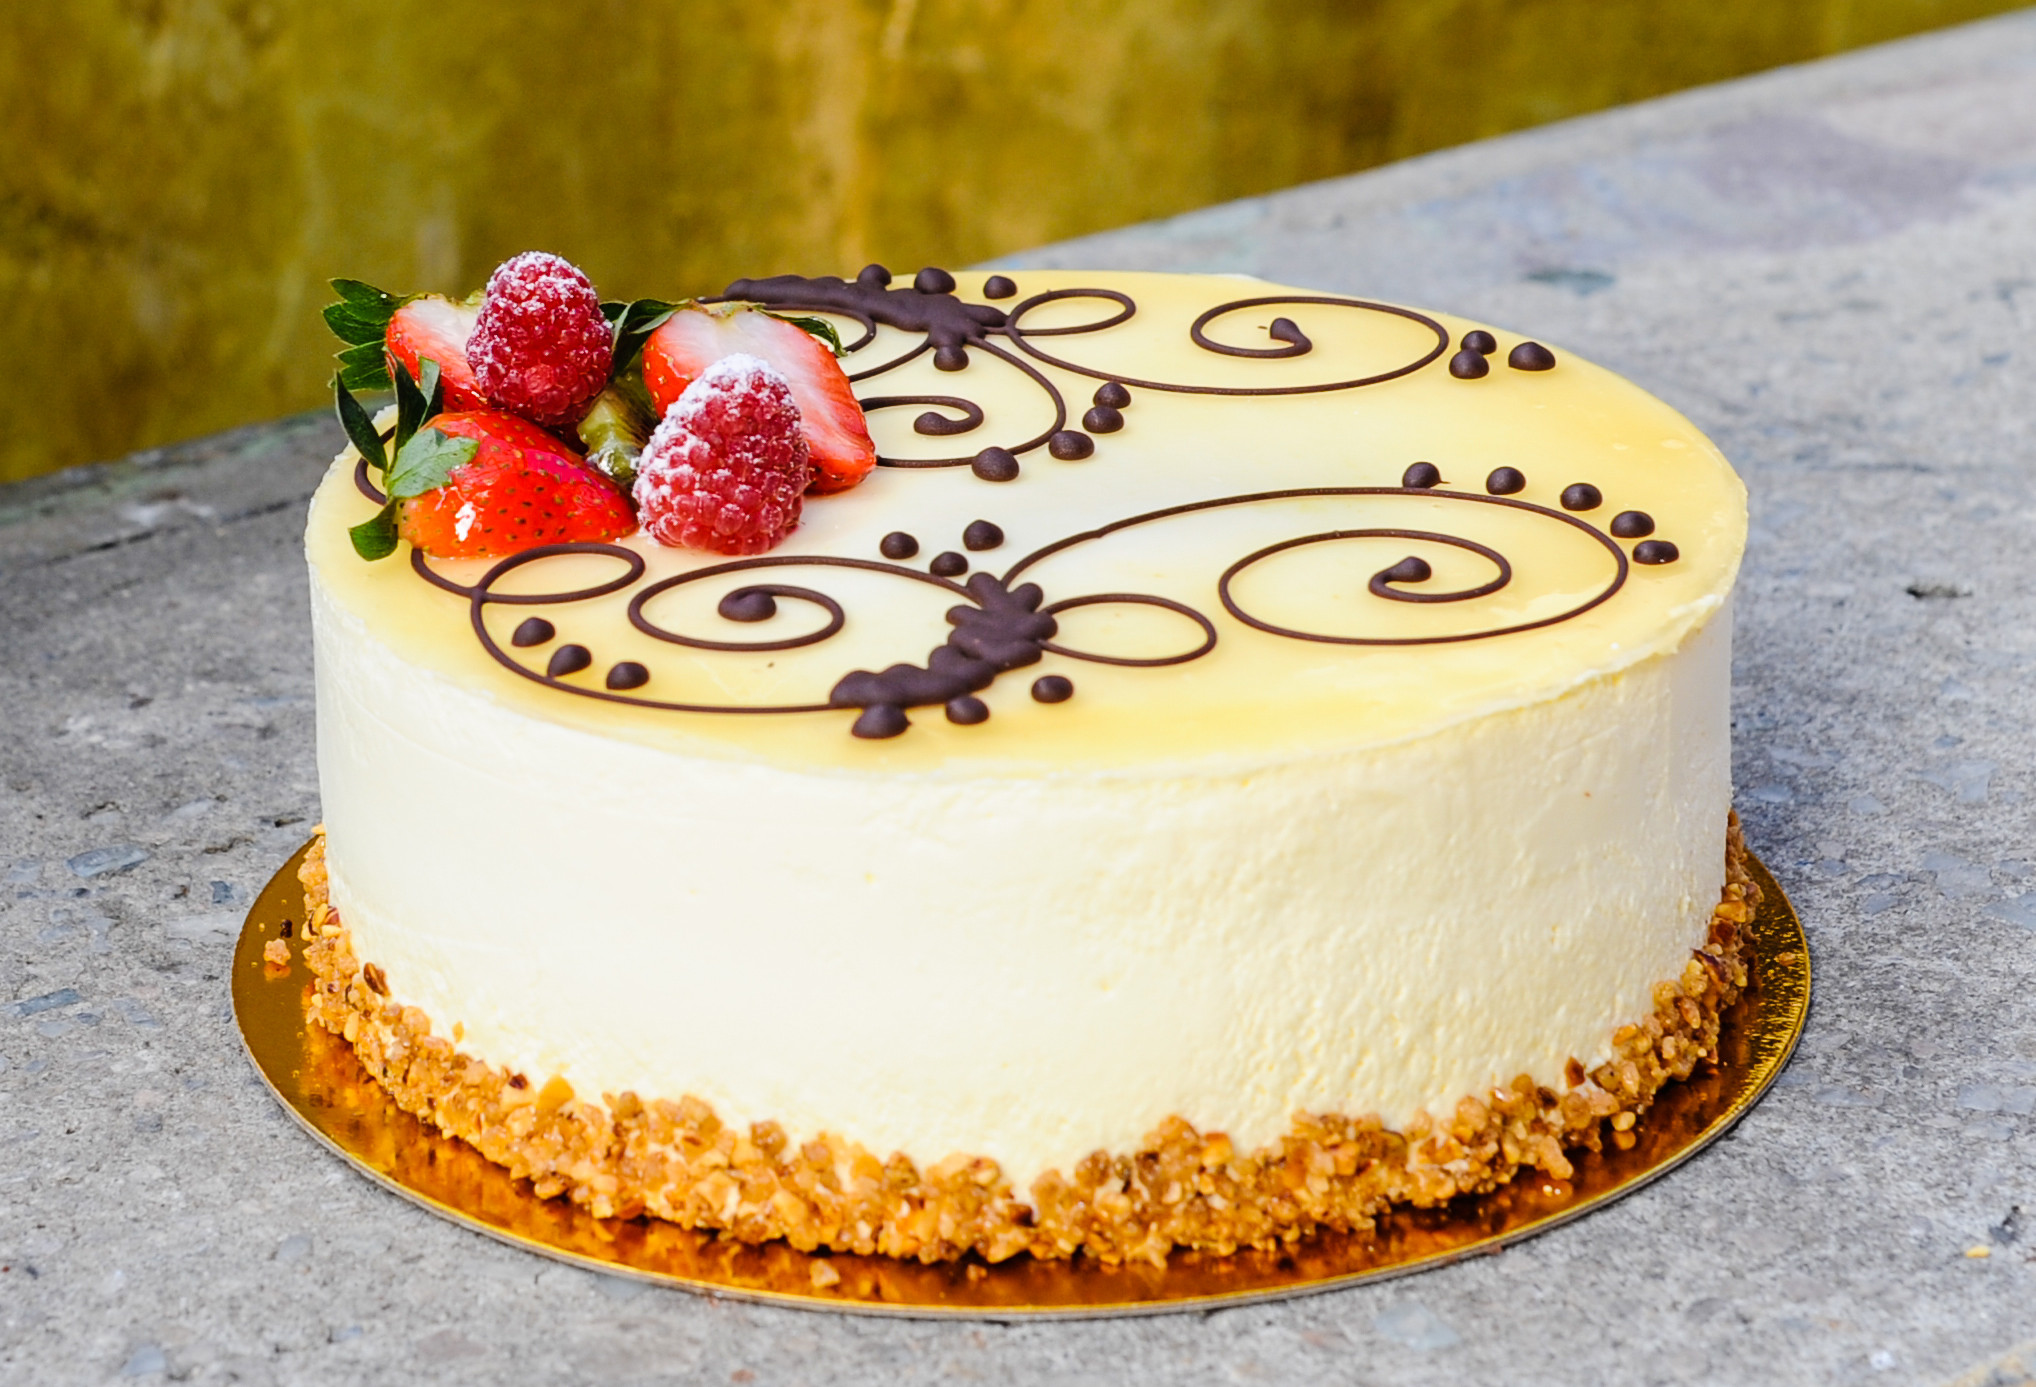 Best ideas about Birthday Cake Pics . Save or Pin Guglhupf Birthday Cakes Now.